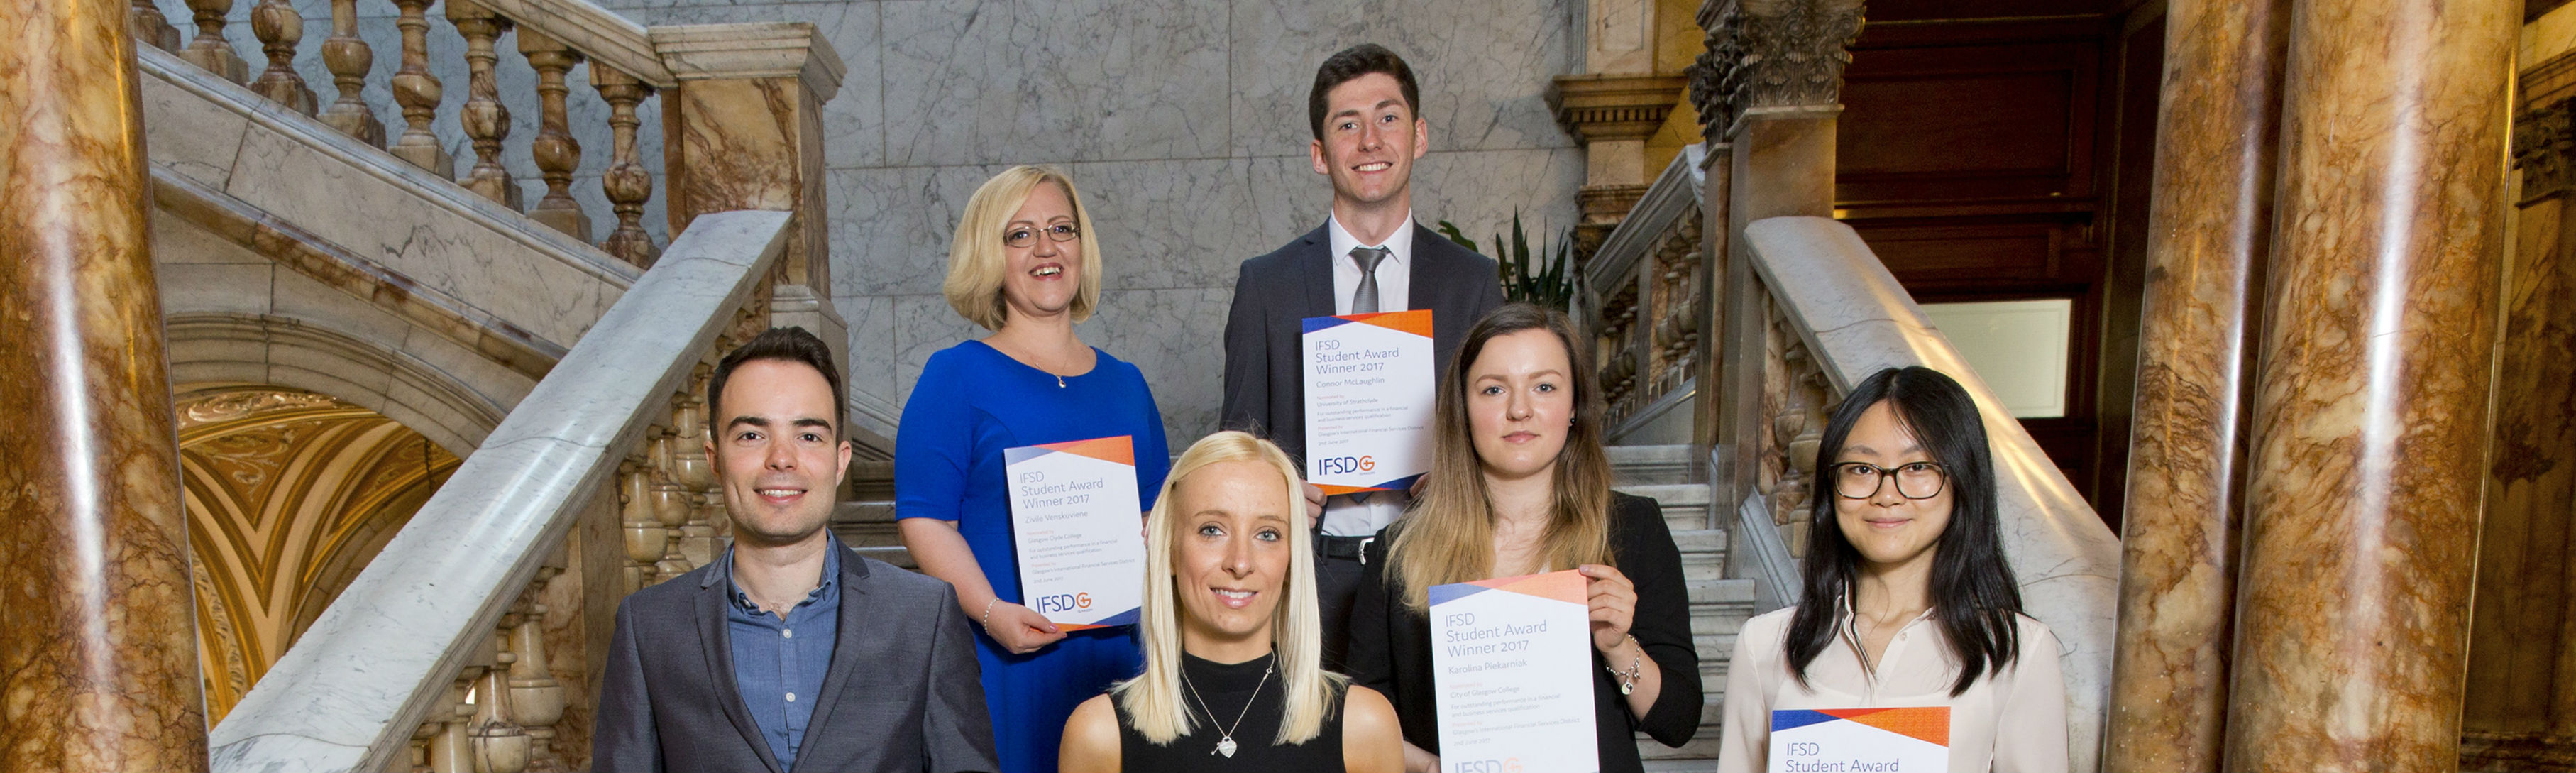 Outstanding Achievers Highlight Wealth Of Talent